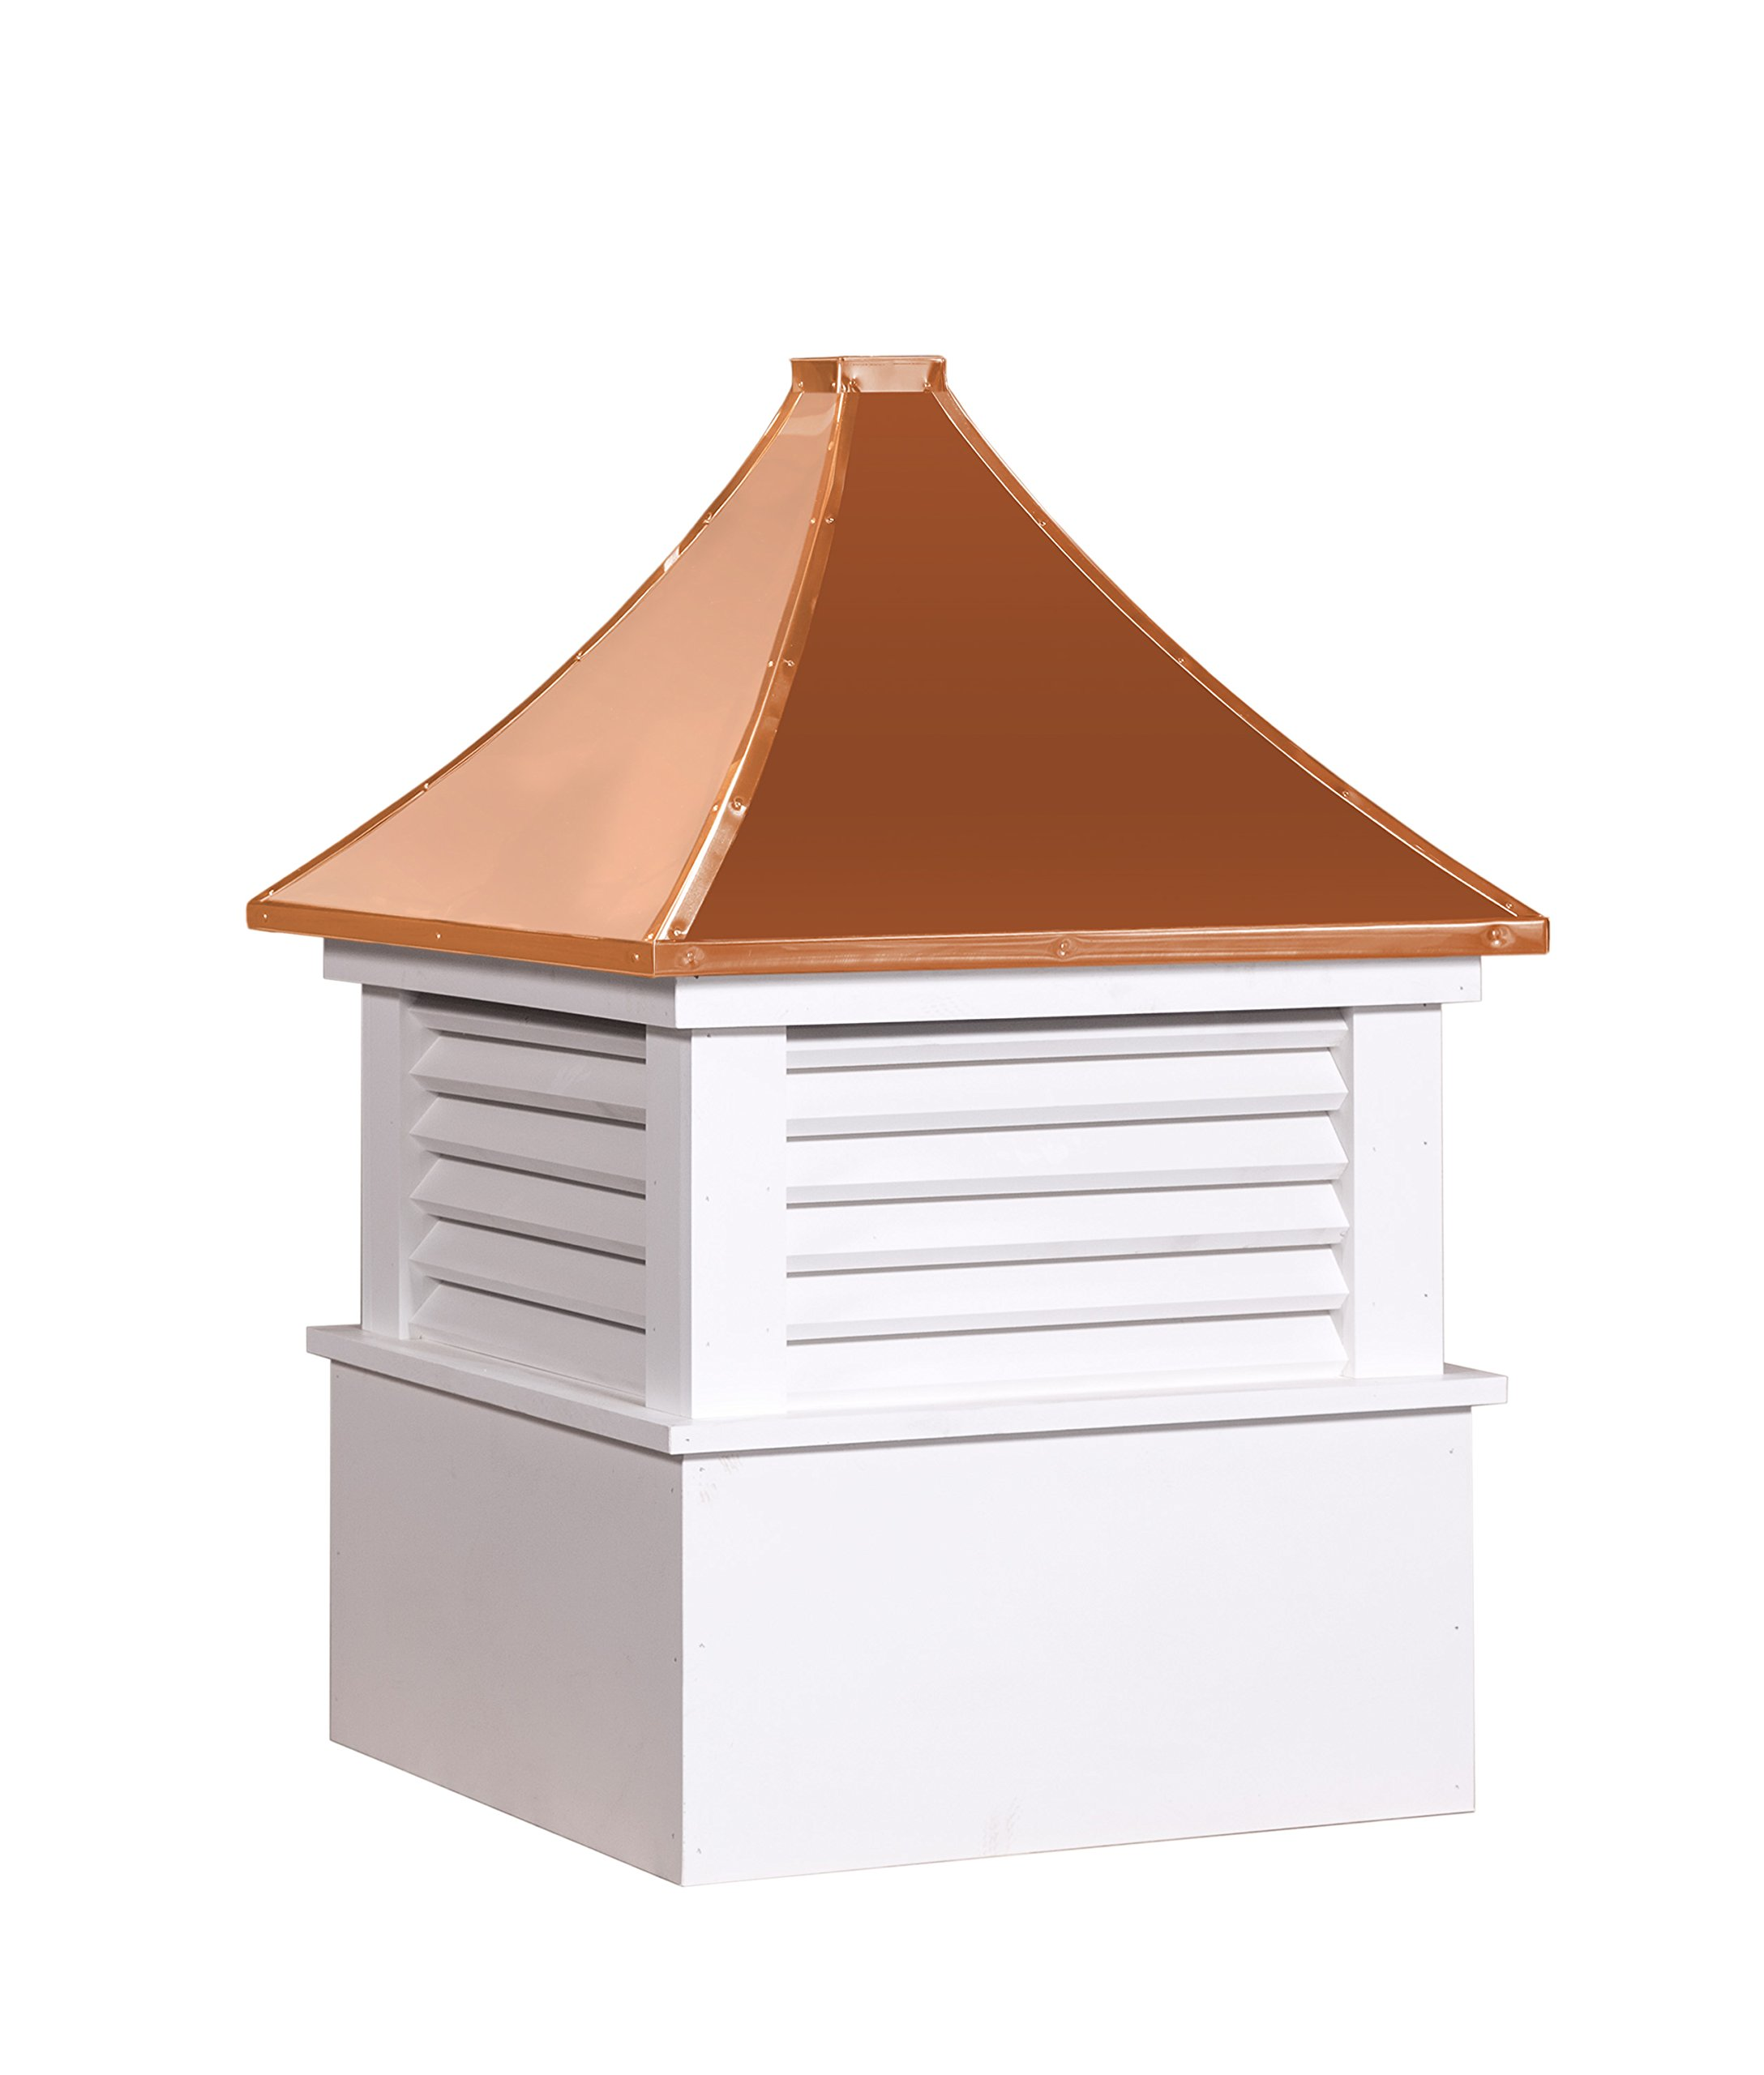 East Coast Weathervanes and Cupolas Vinyl Attleboro Cupola (Vinyl, 25 in square x 36 in tall)